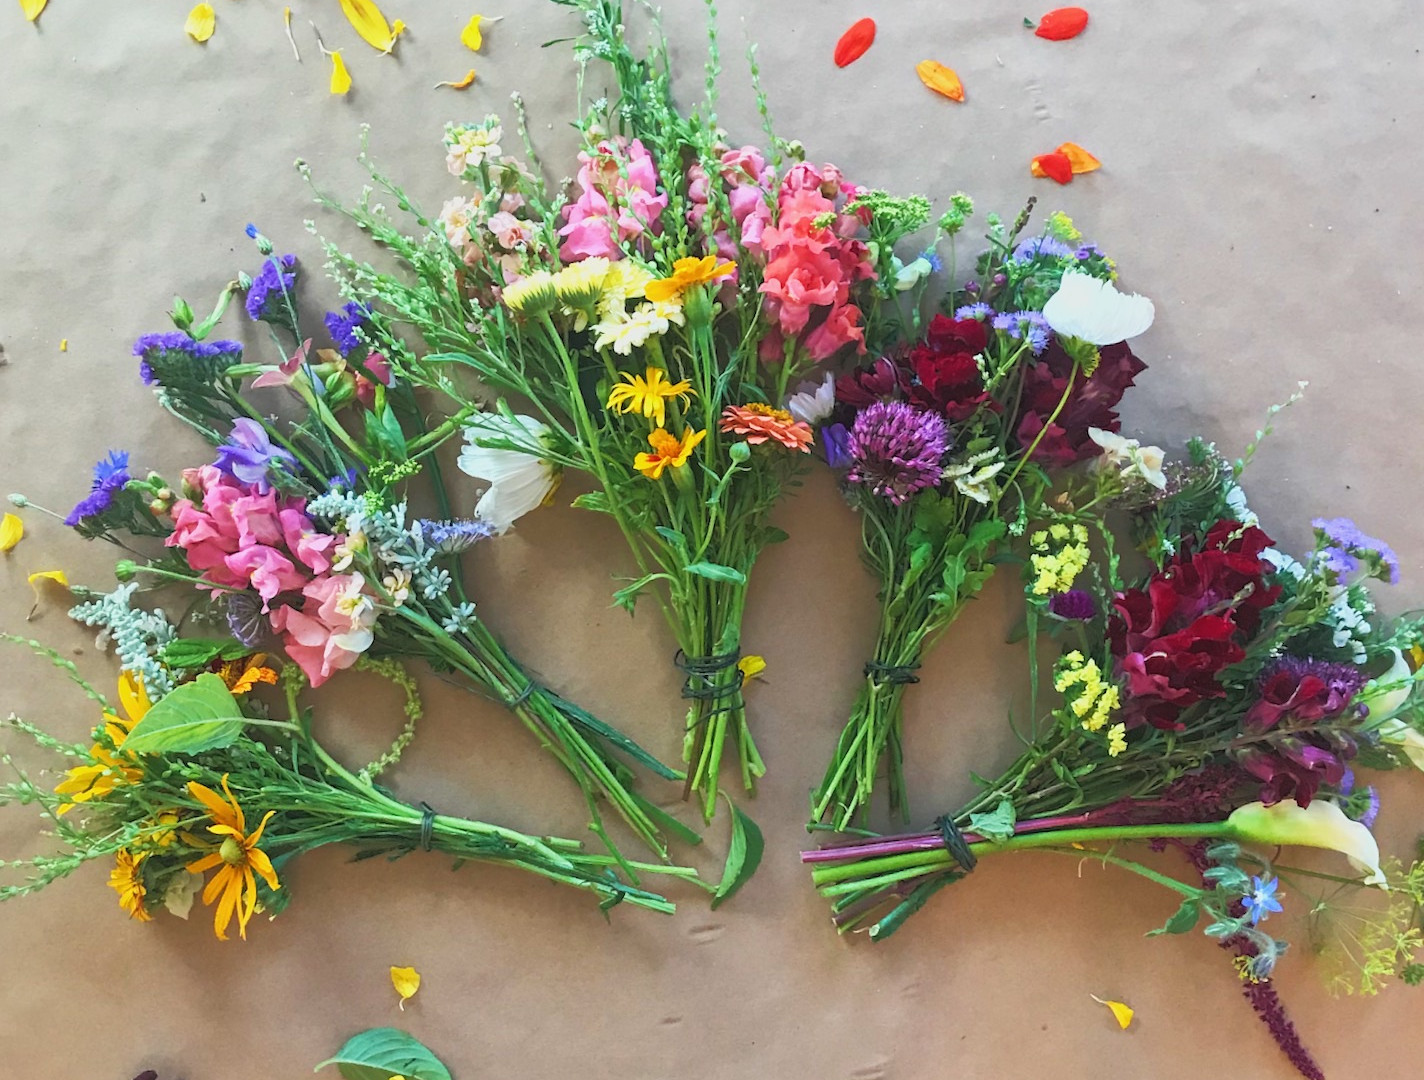 A sampling of the Farm's mid-summer bouquets